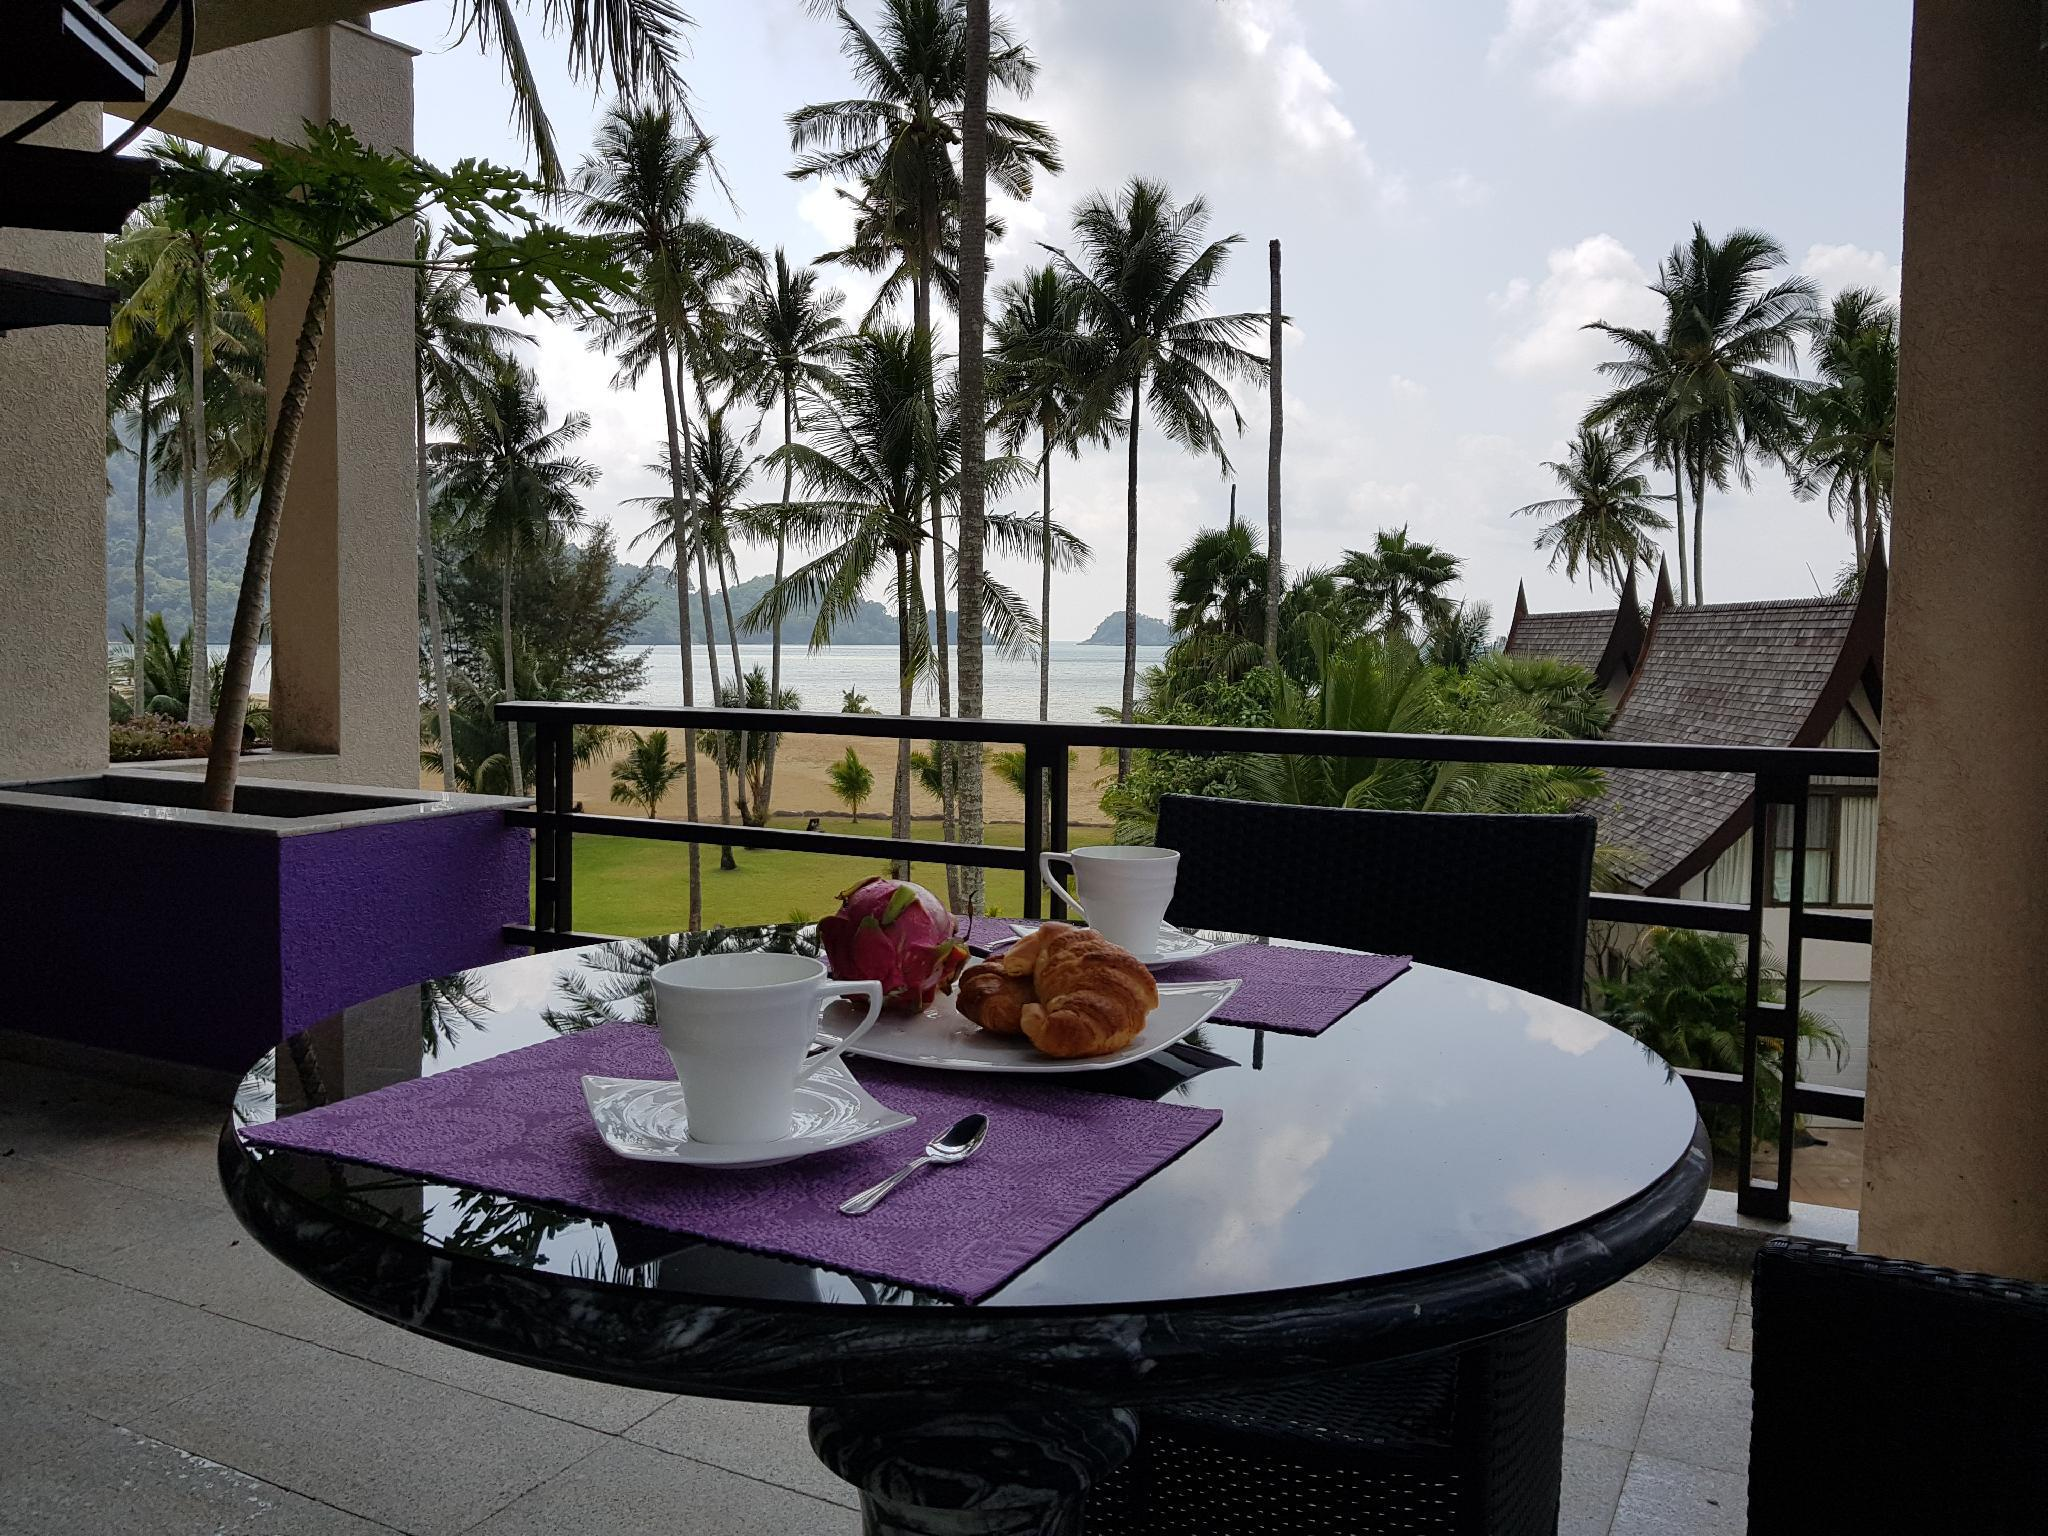 Siam Royal View Penthouse Apartment Siam Royal View Penthouse Apartment